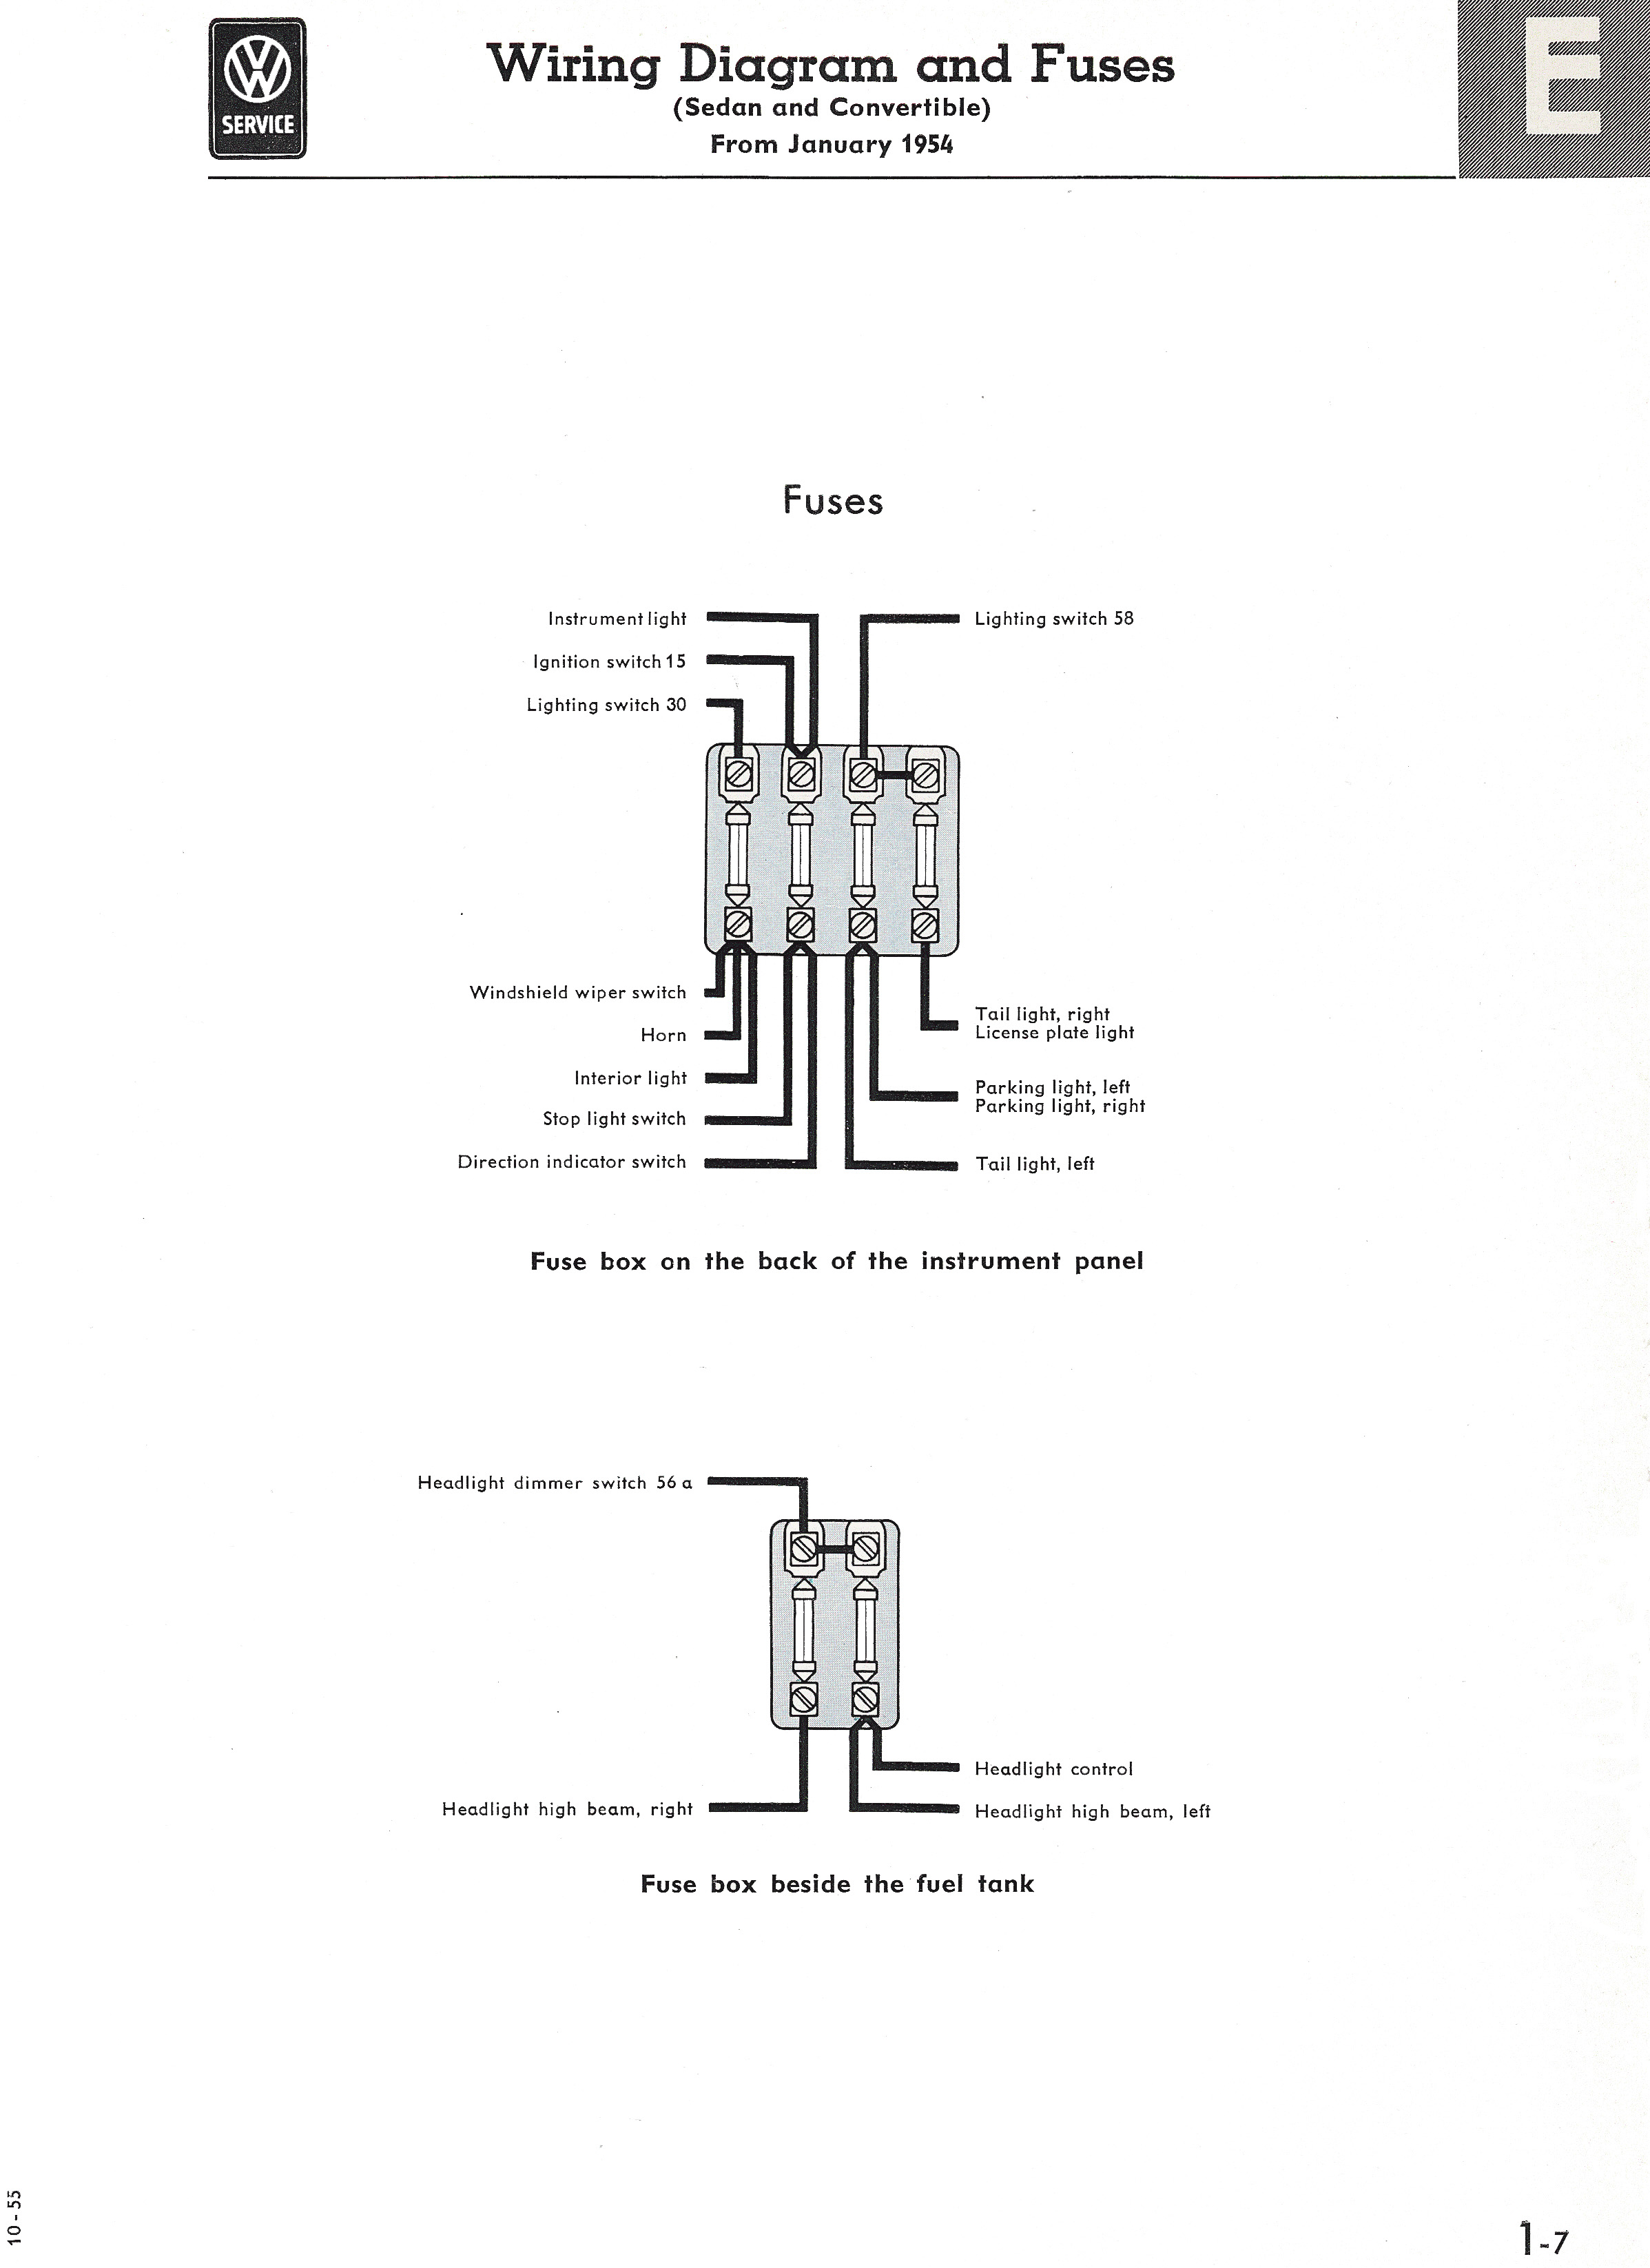 67 Vw Bug Turn Signal Switch Wiring Diagram | Wiring Diagram  Volkswagen Bug Wiring Diagram on classic bug, 67 volkswagen vanagon, 67 volkswagen busfor sale, 67 volkswagen bus, baja bug, 67 volkswagen beetle older, 67 volkswagen fastback, vw bug, bob beetle bug,